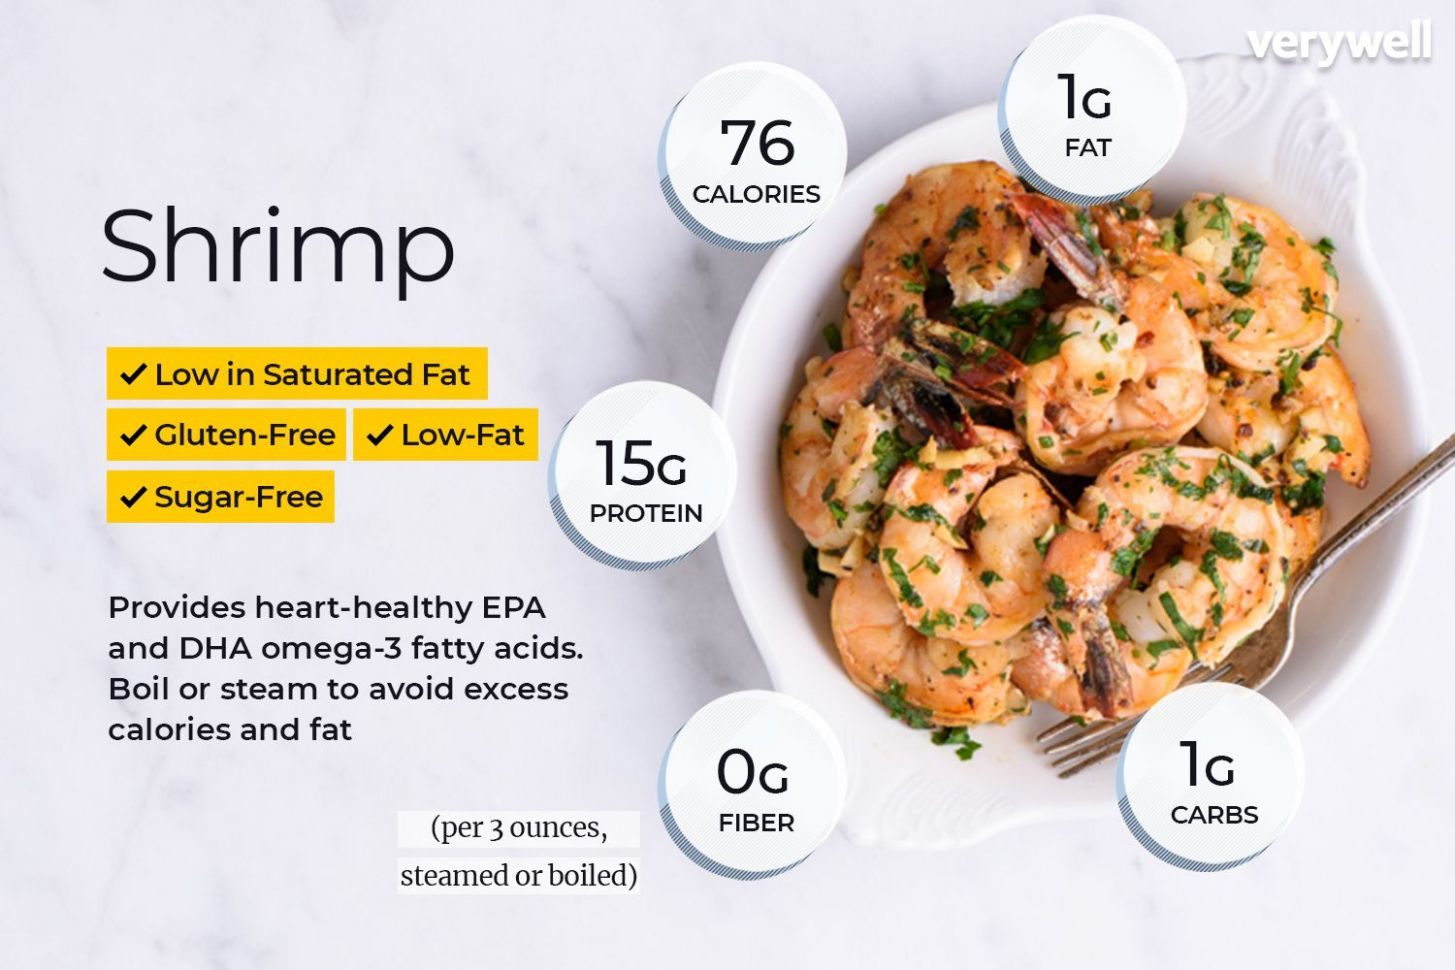 Shrimp Nutrition Facts and Health Benefits - Healthy Recipes Nutrition Facts